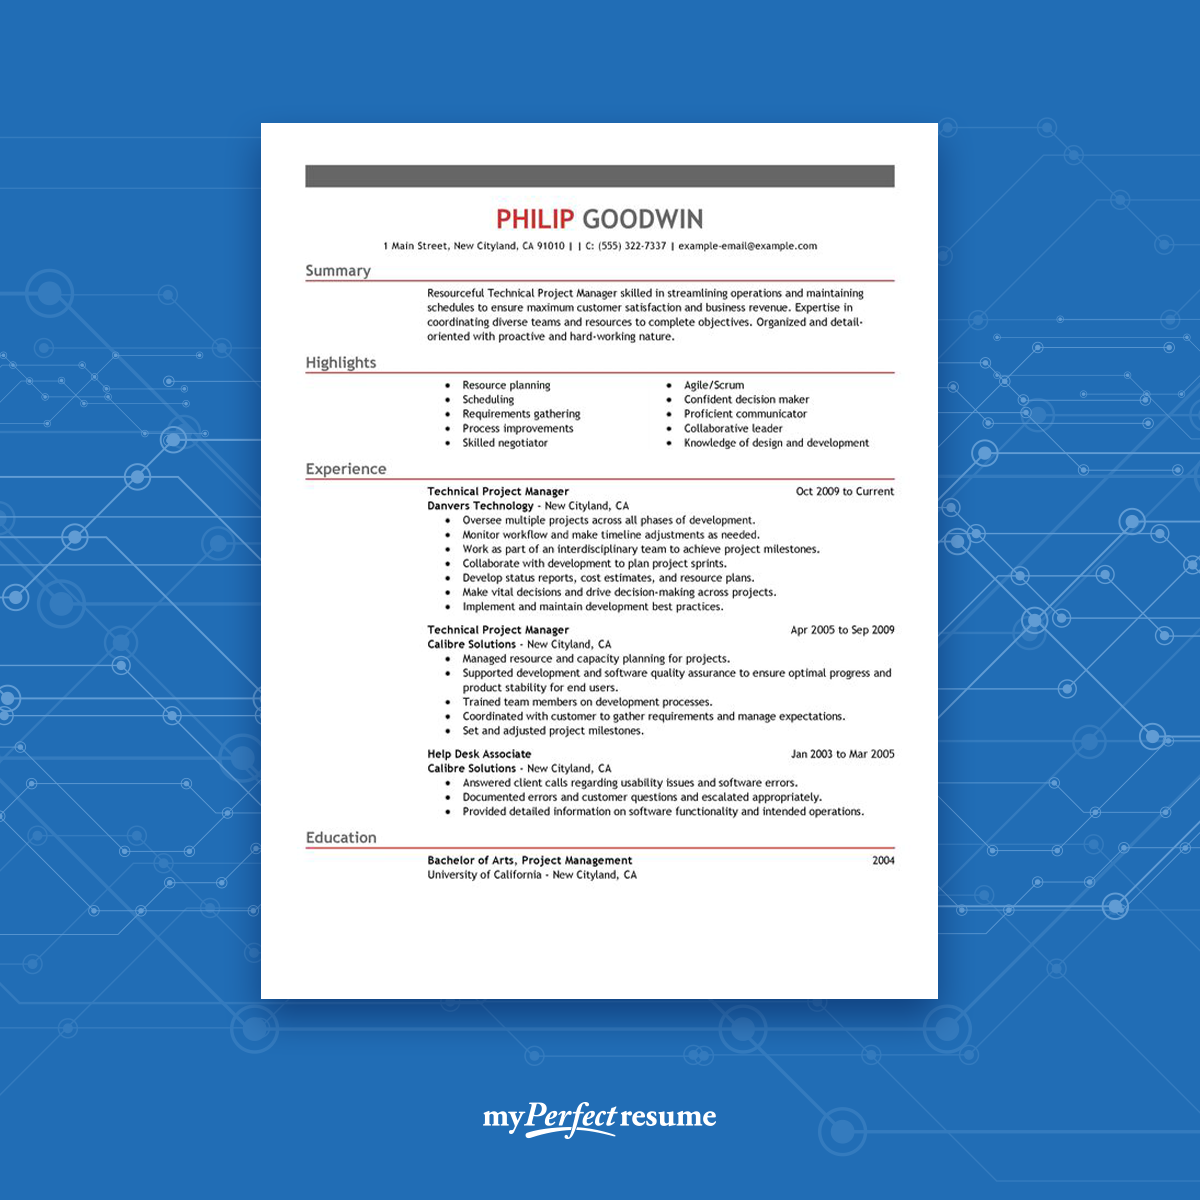 Customize Your Resume With Our Free Templates For 2020